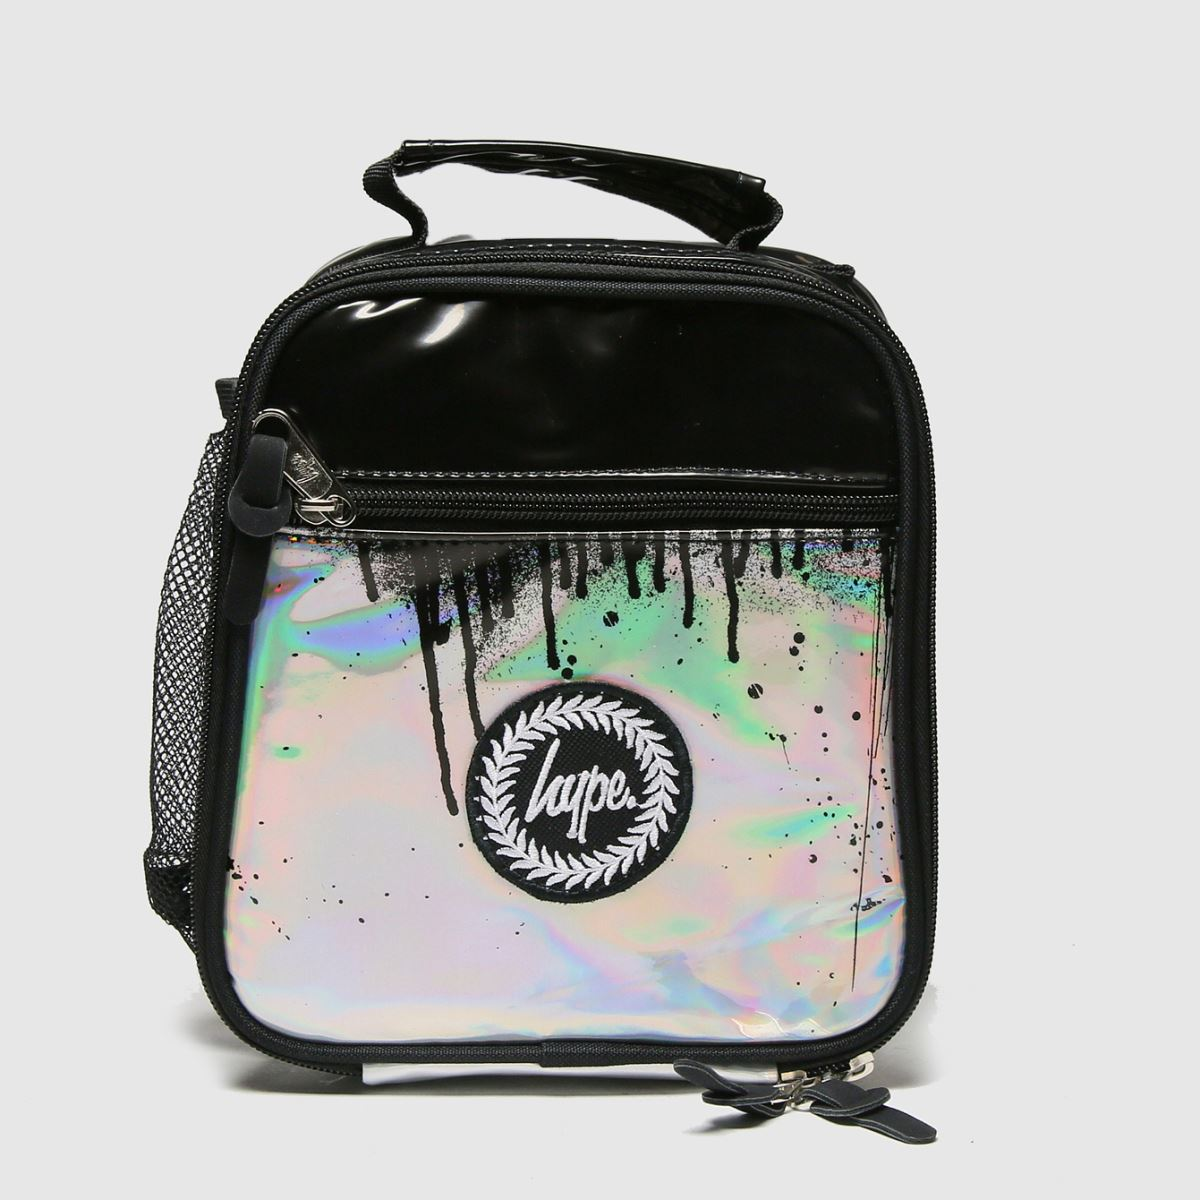 Accessories Hype Multi Holo Drips Lunch Box